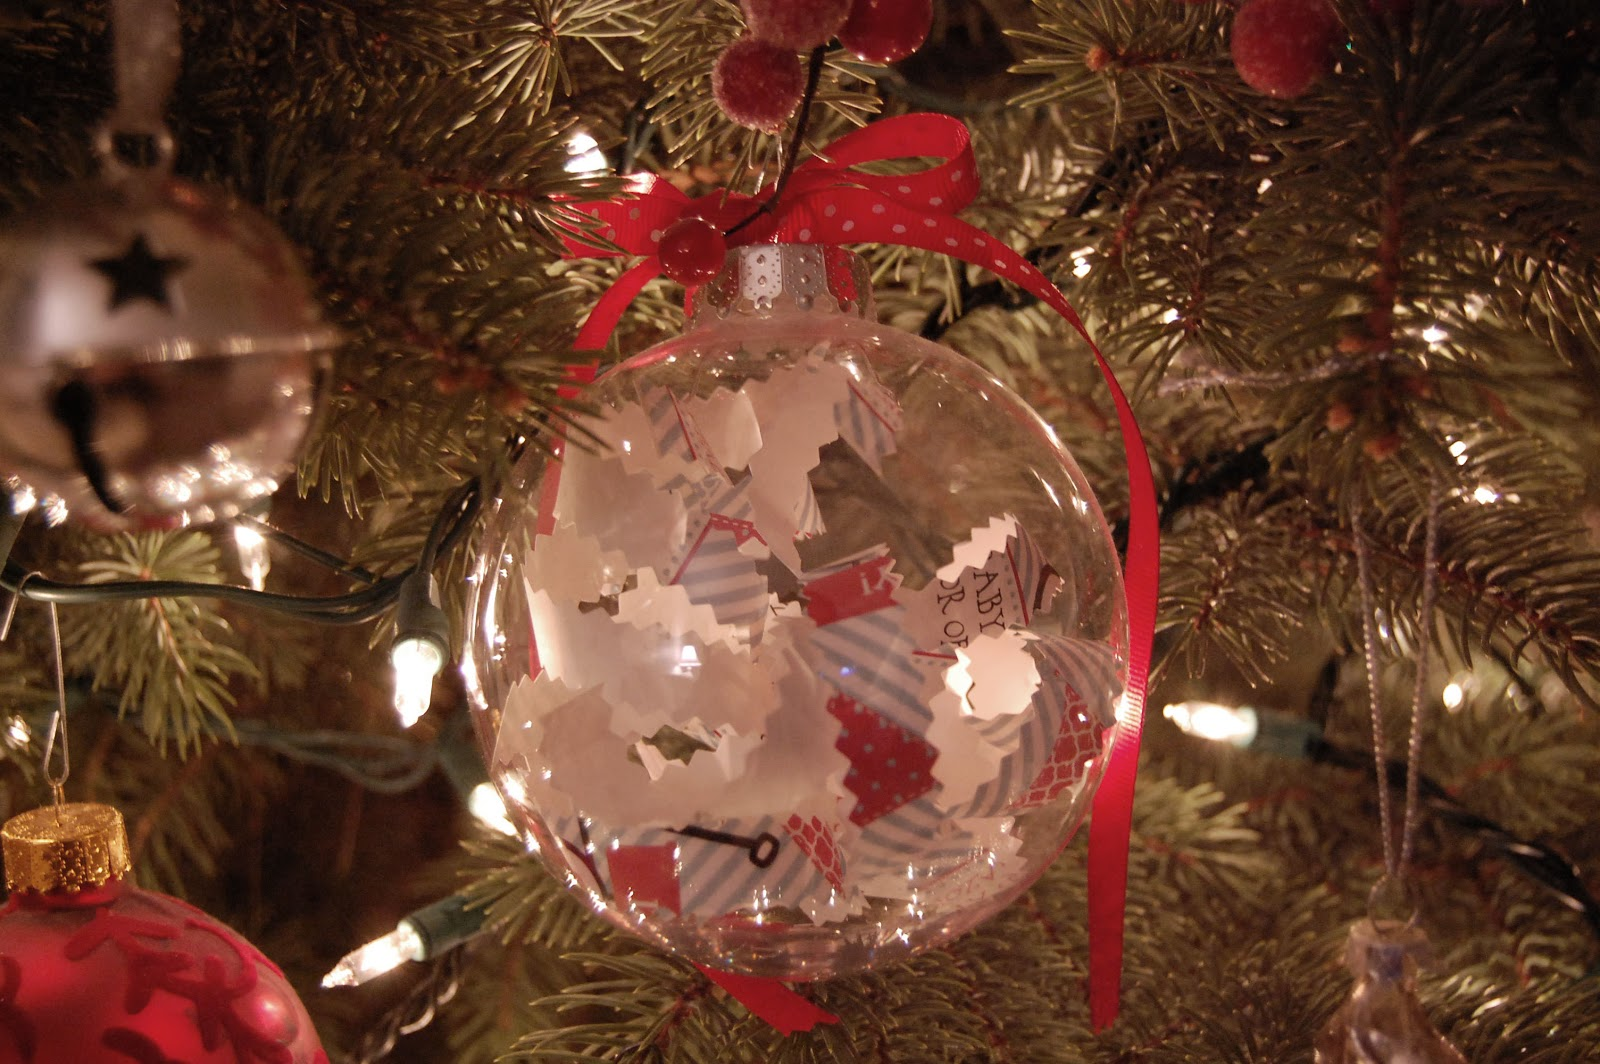 New baby christmas ornament - A Dear Friend Of Mine Made This Ornament Out Of The Invitation To My Baby Shower So Cute